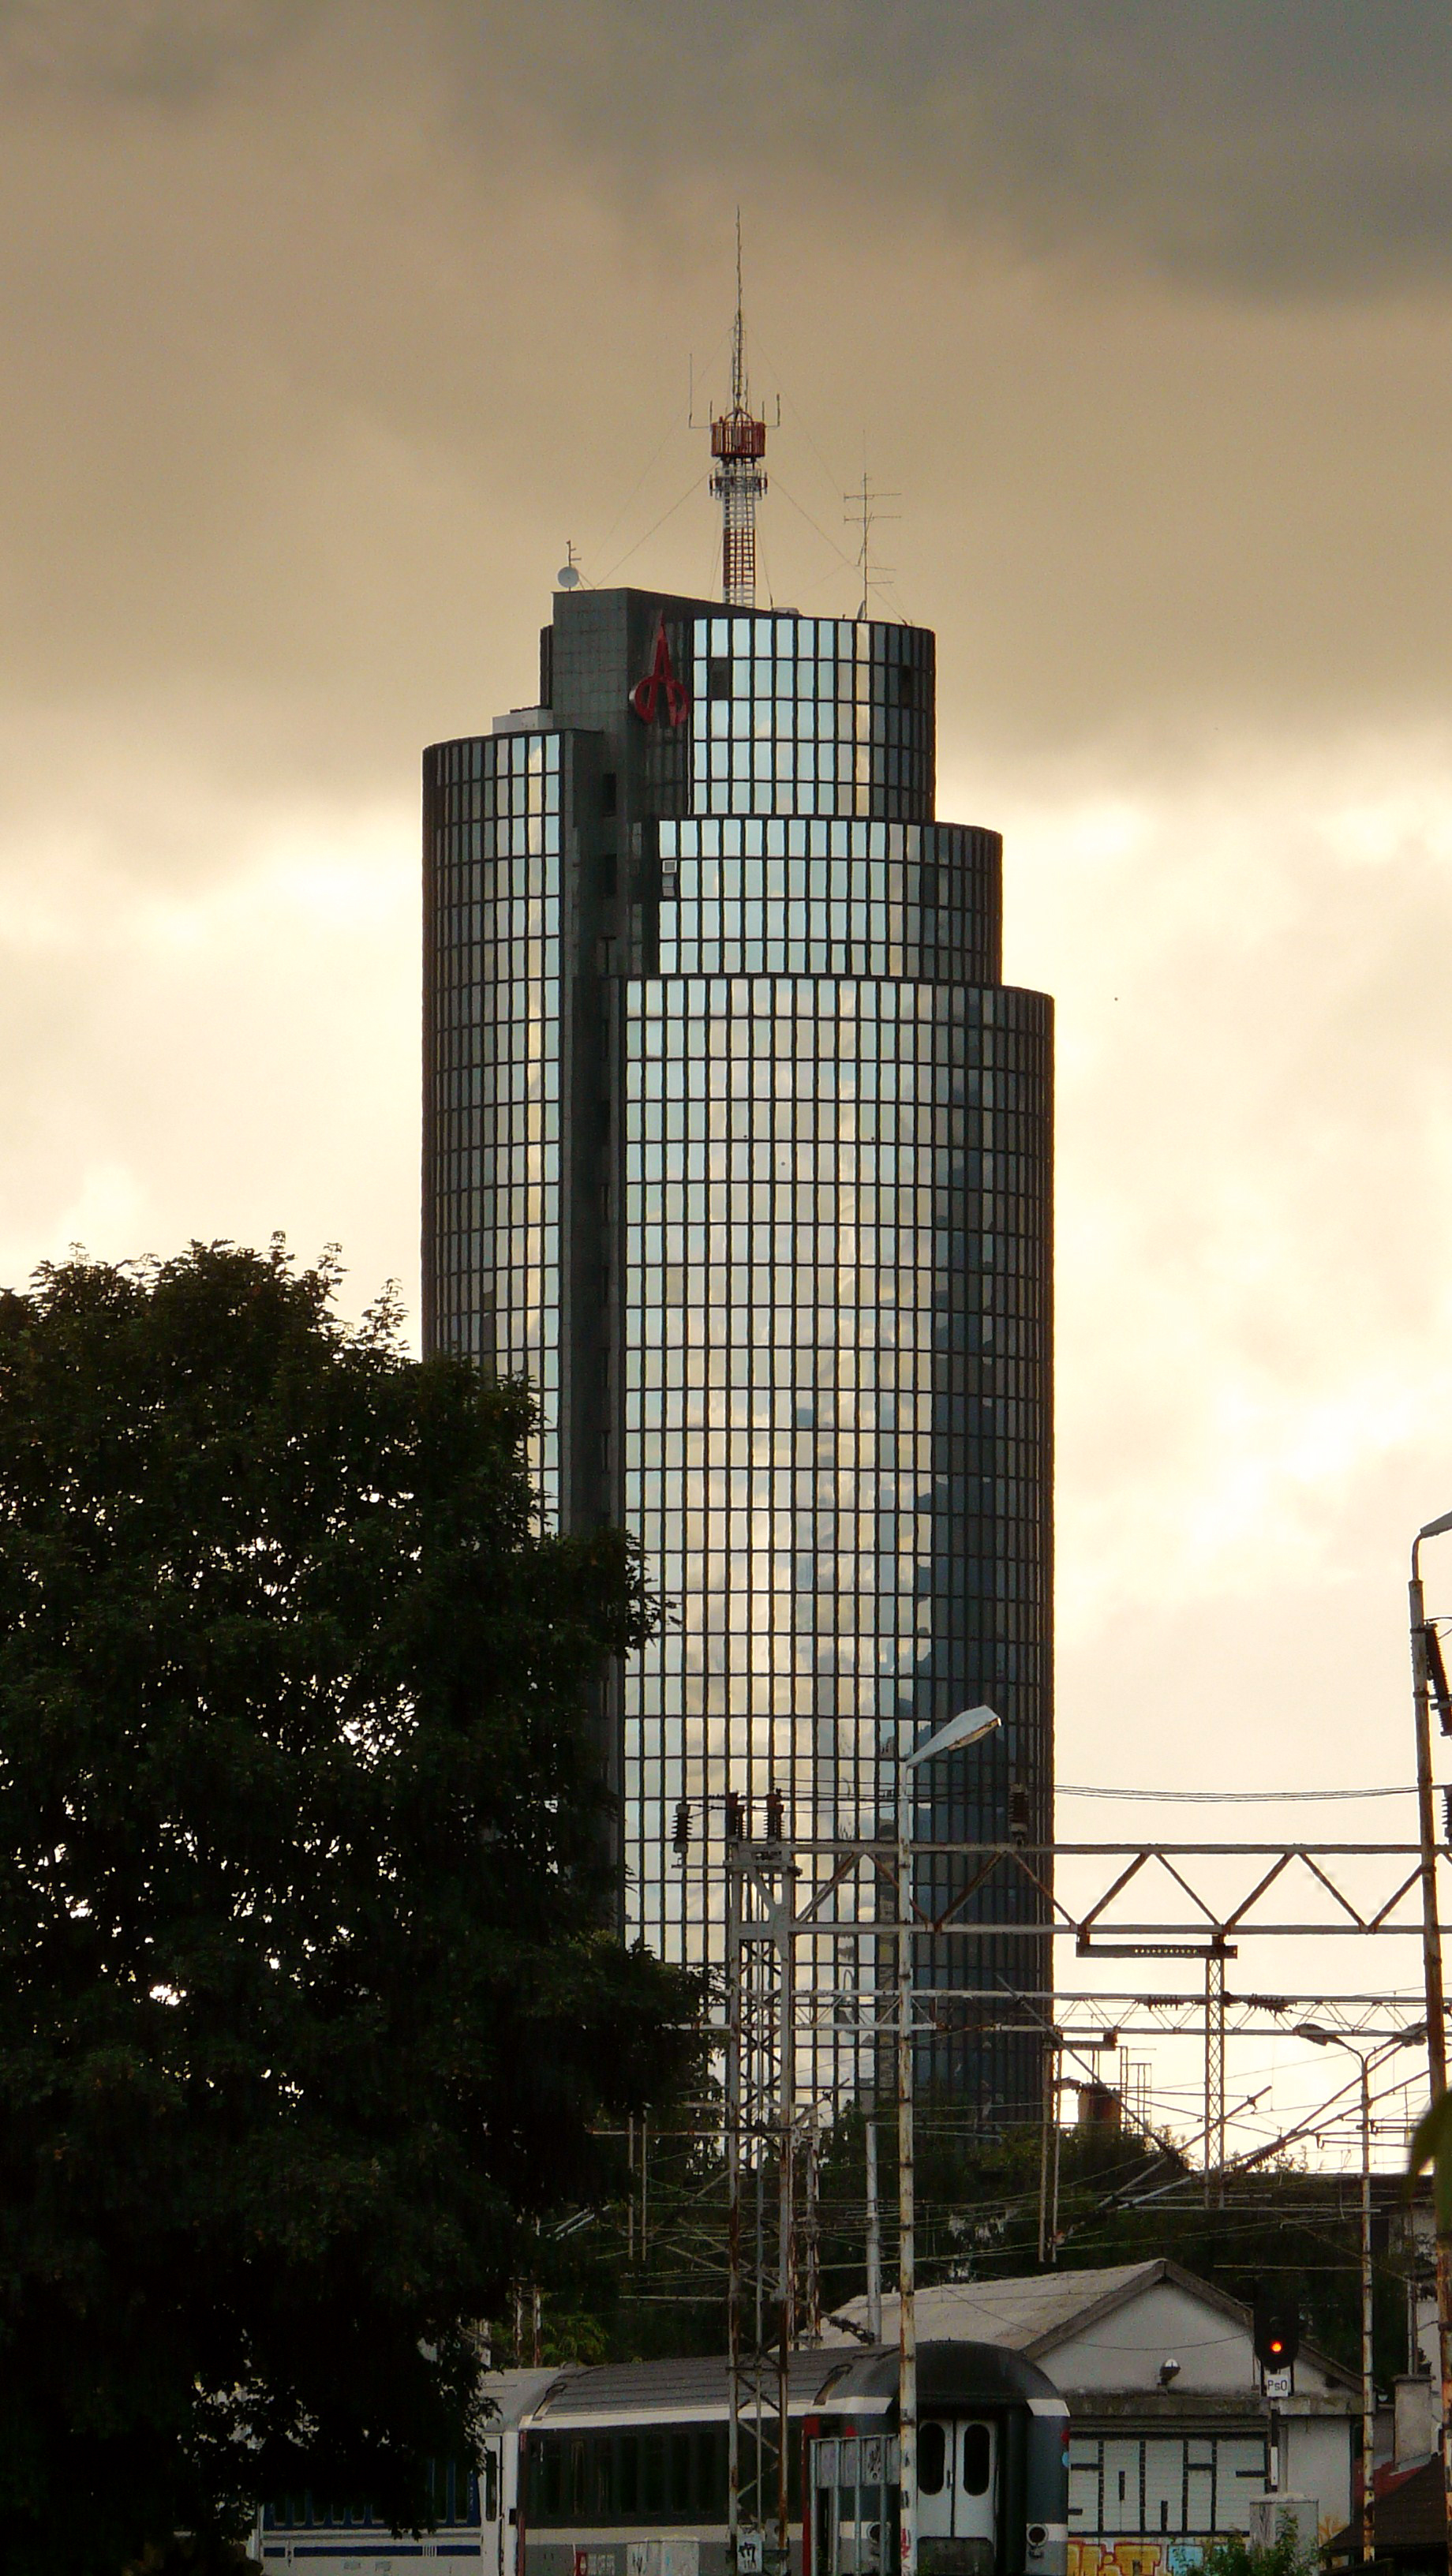 File:Cibona Tower.JPG - Wikimedia Commons